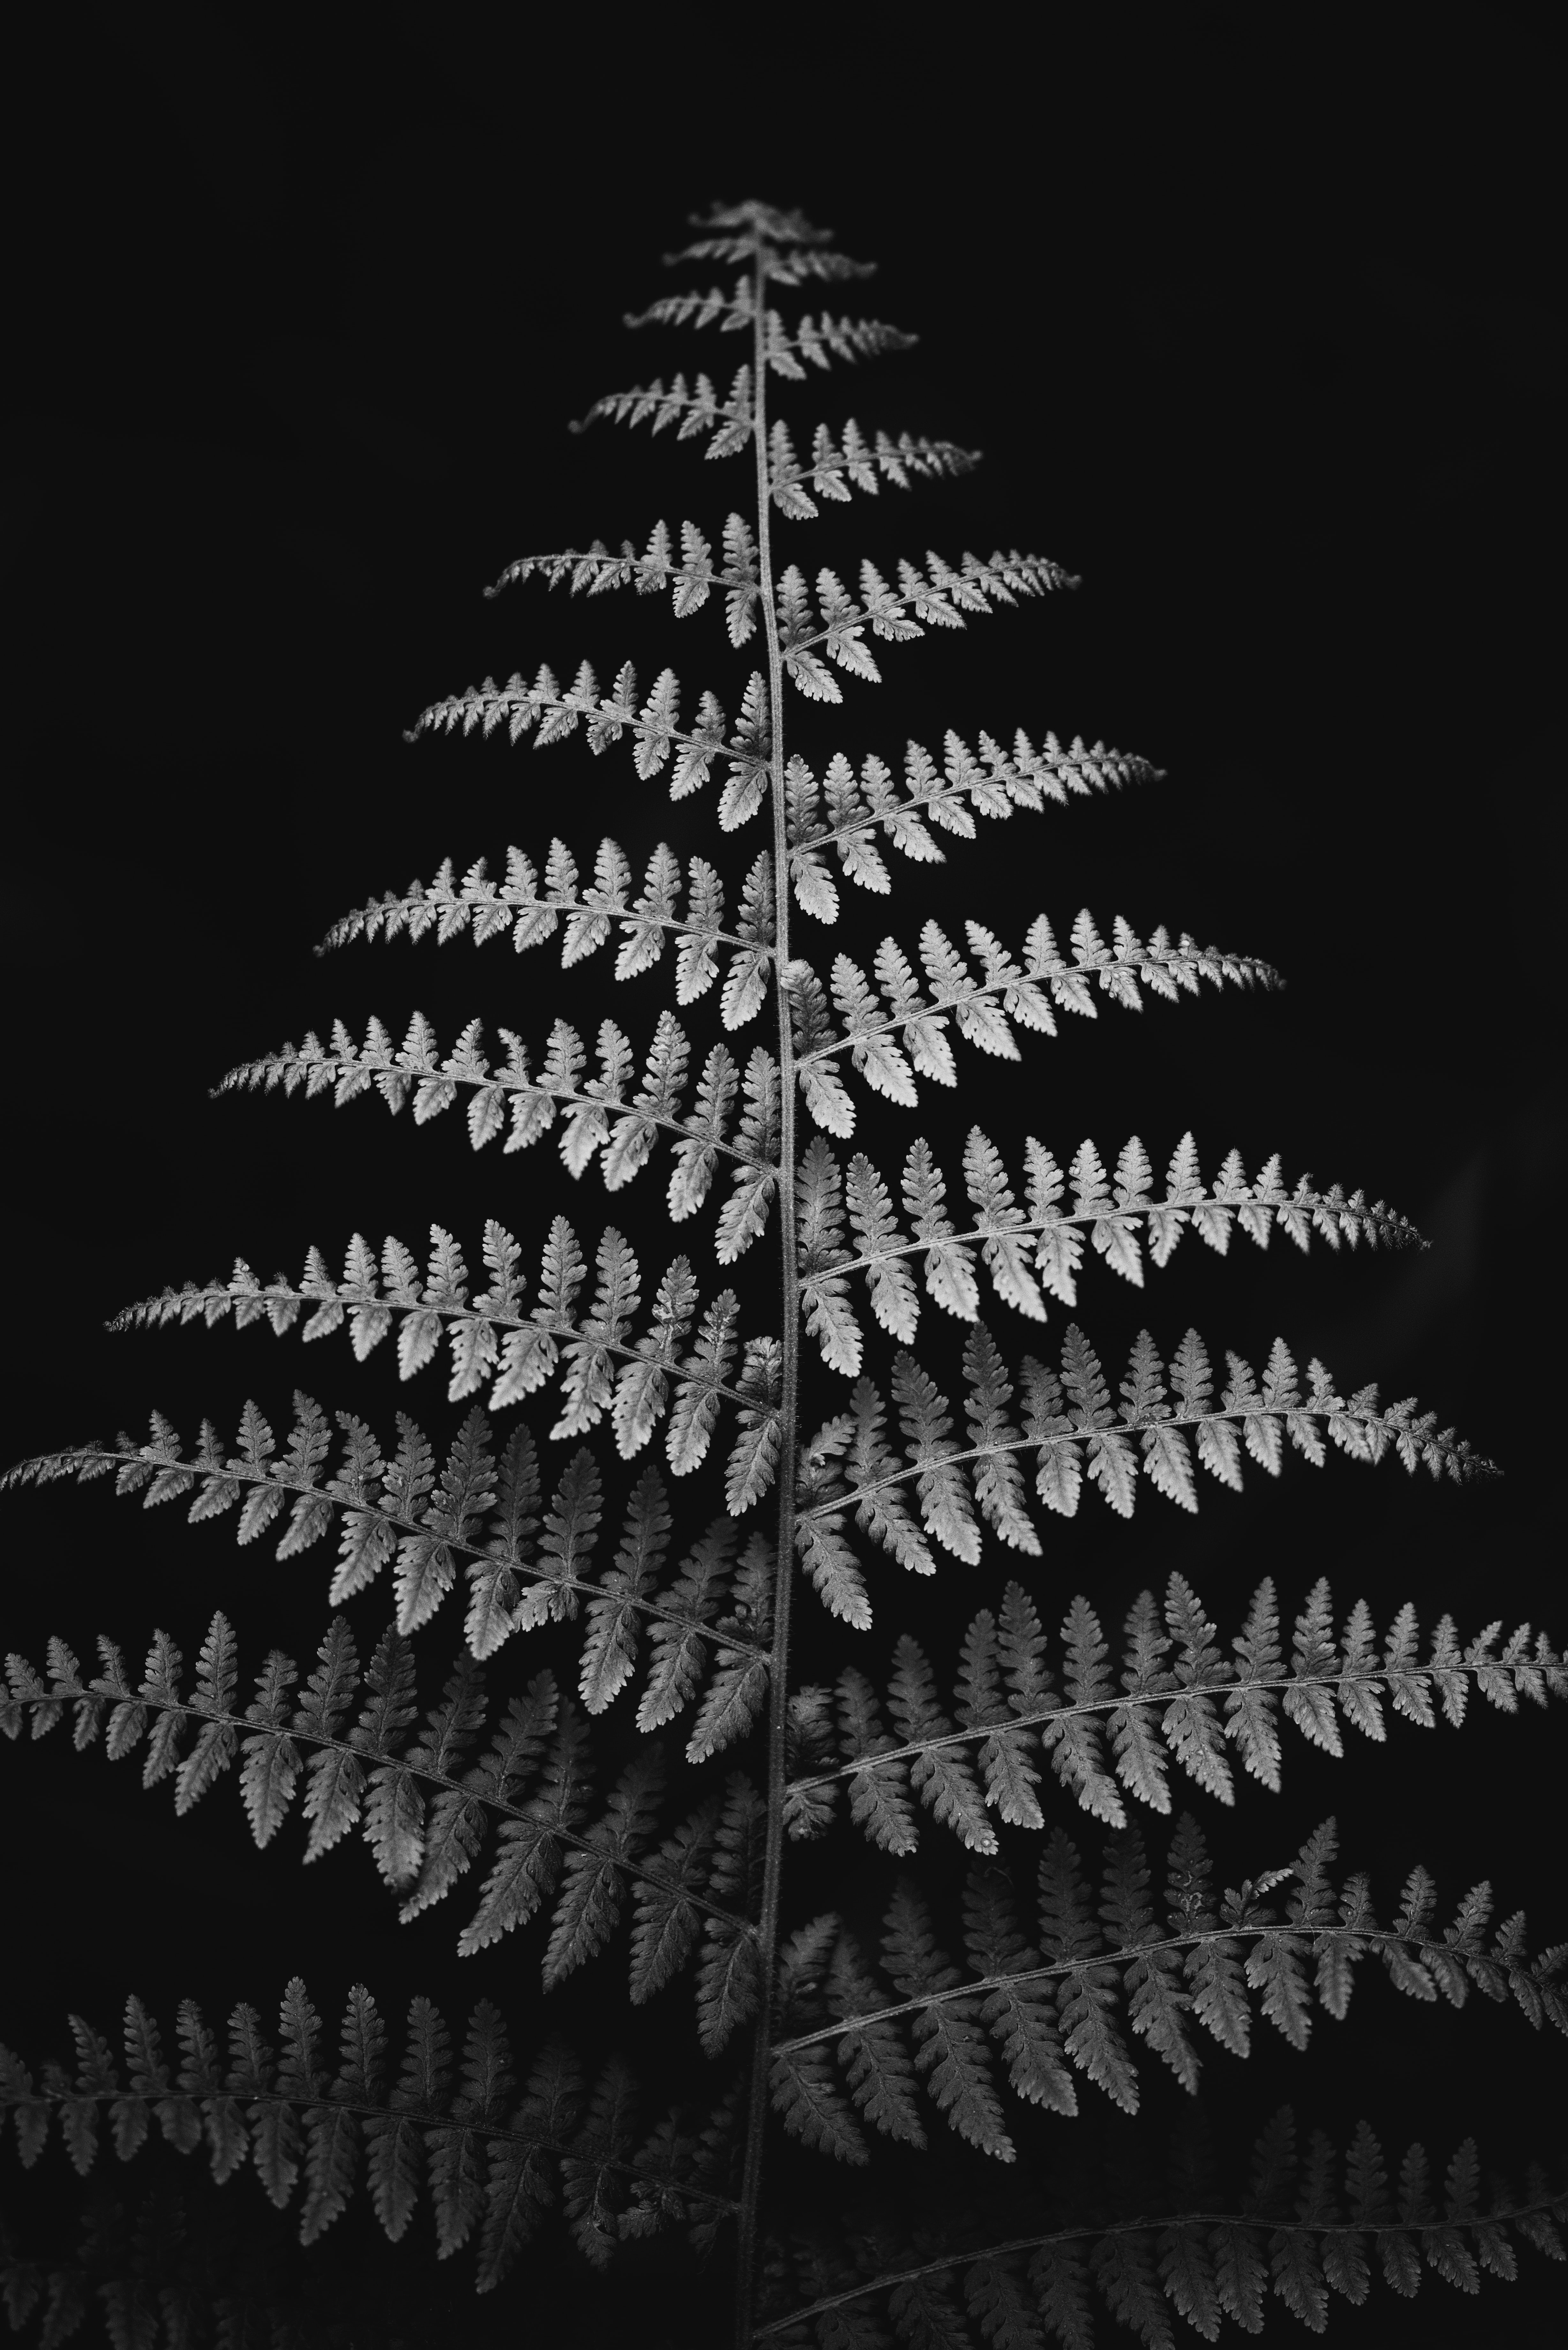 grayscale photography of fern plant